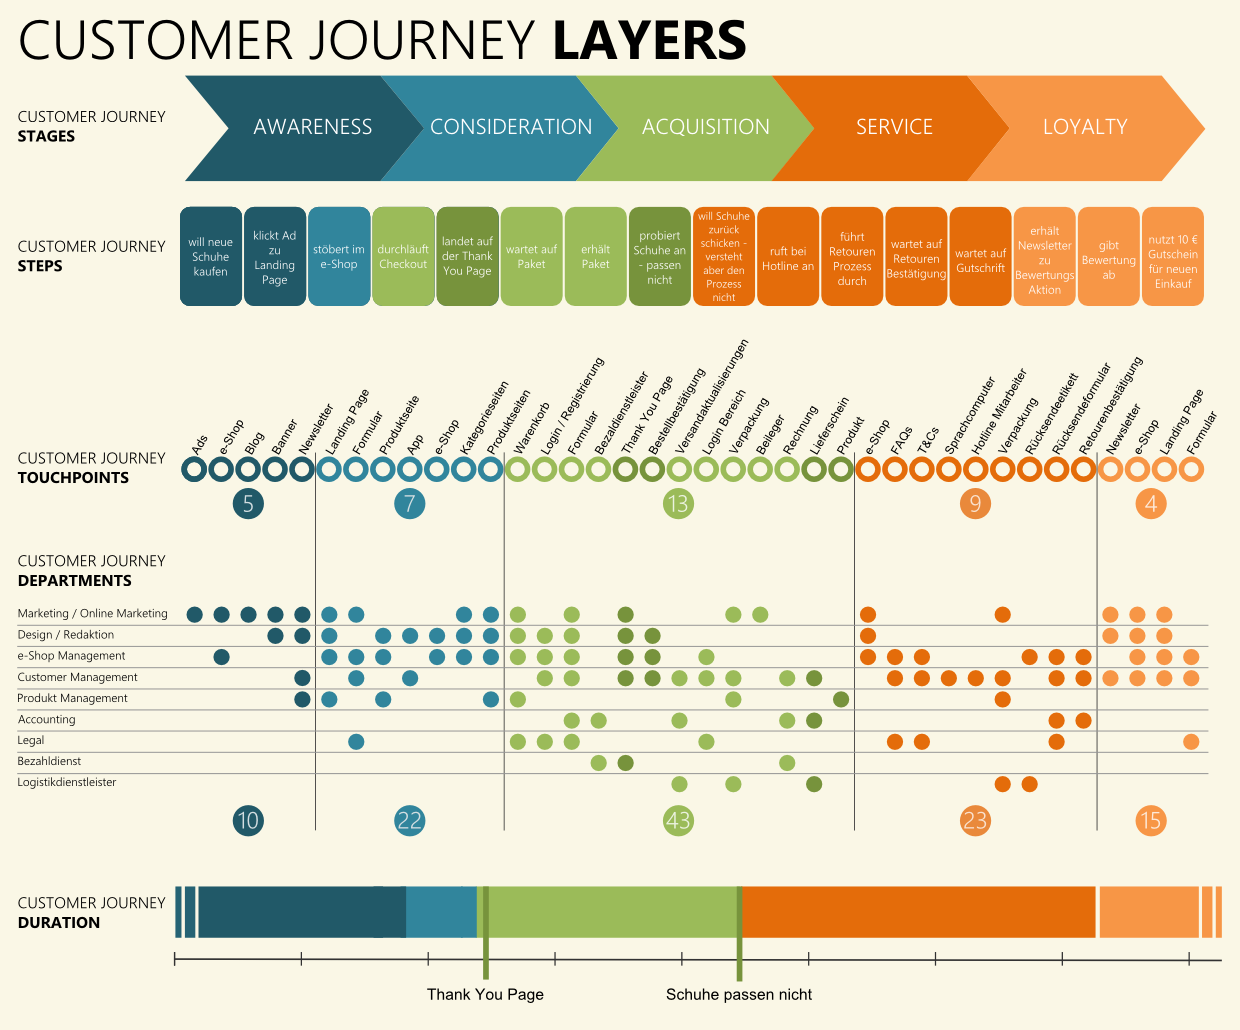 5_Customer_Journey_Duration